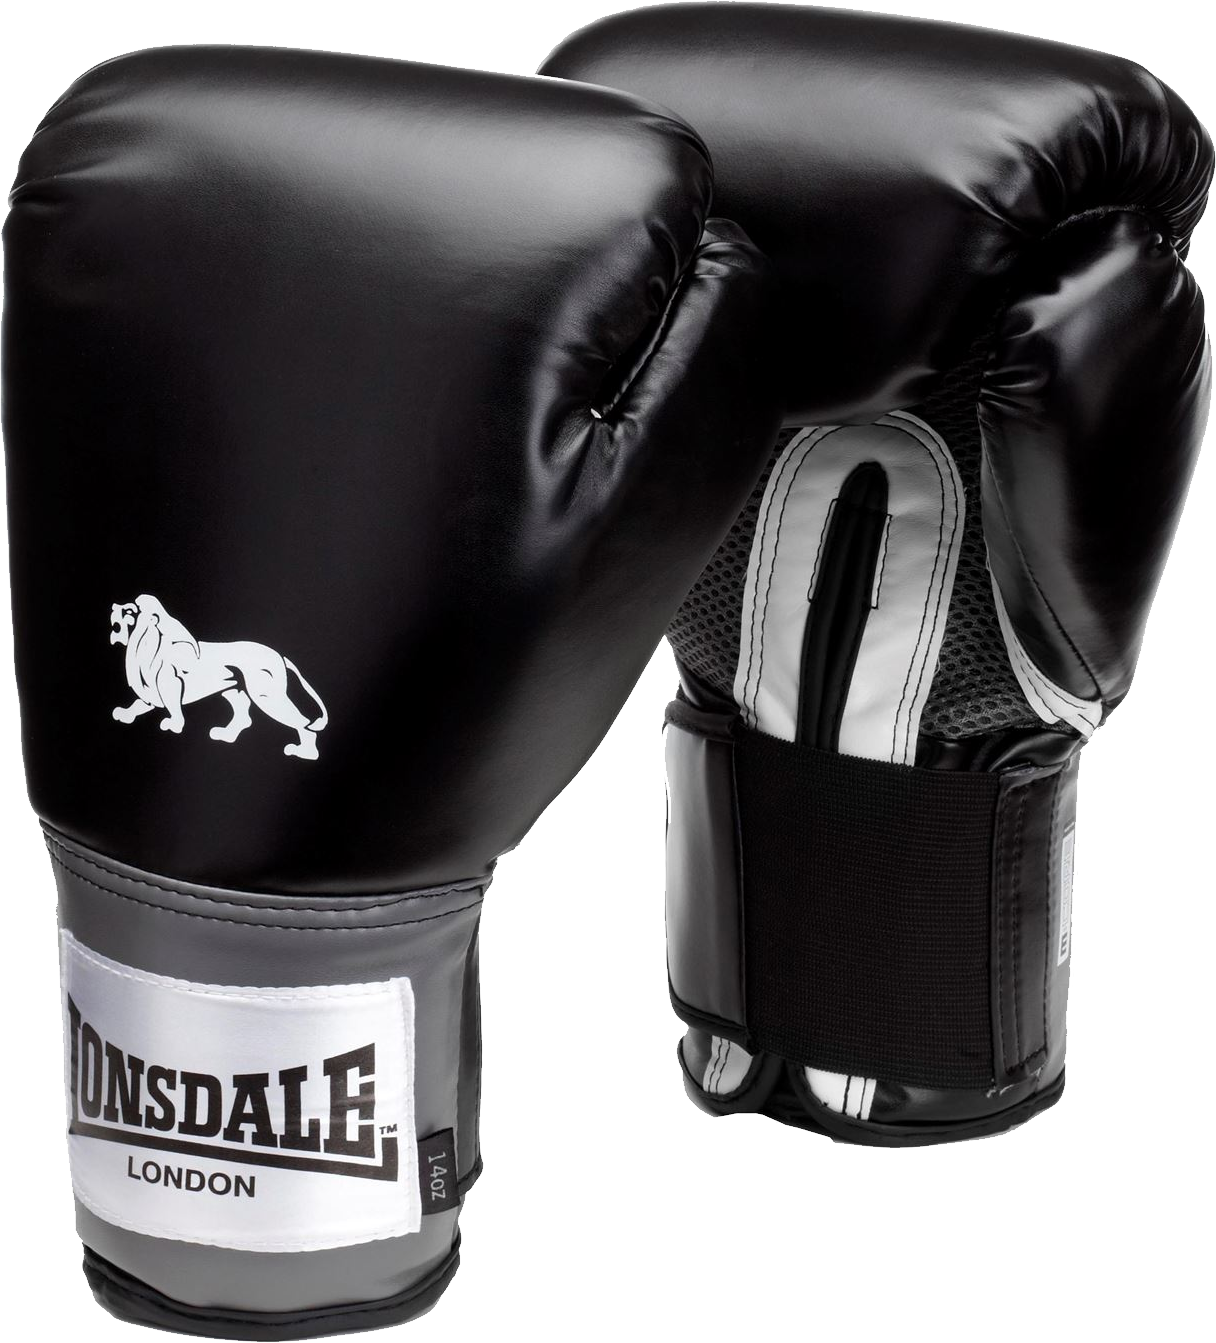 Helmet clipart boxing. Gloves png images free